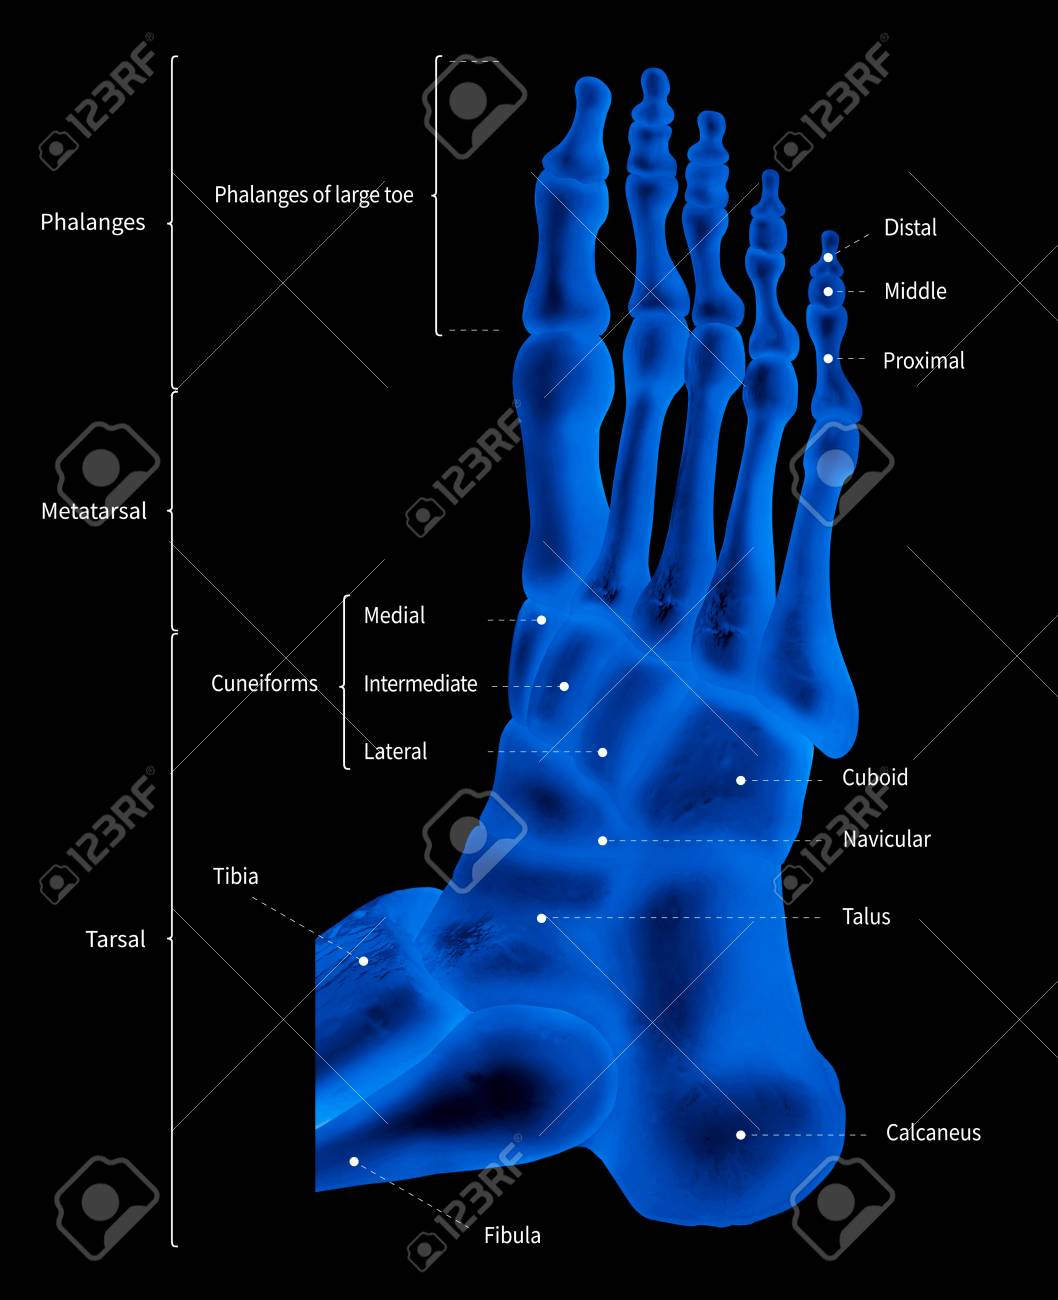 hight resolution of illustration infographic diagram of human foot bone anatomy system lateral view 3d medical illustration human anatomy medical diagram educational